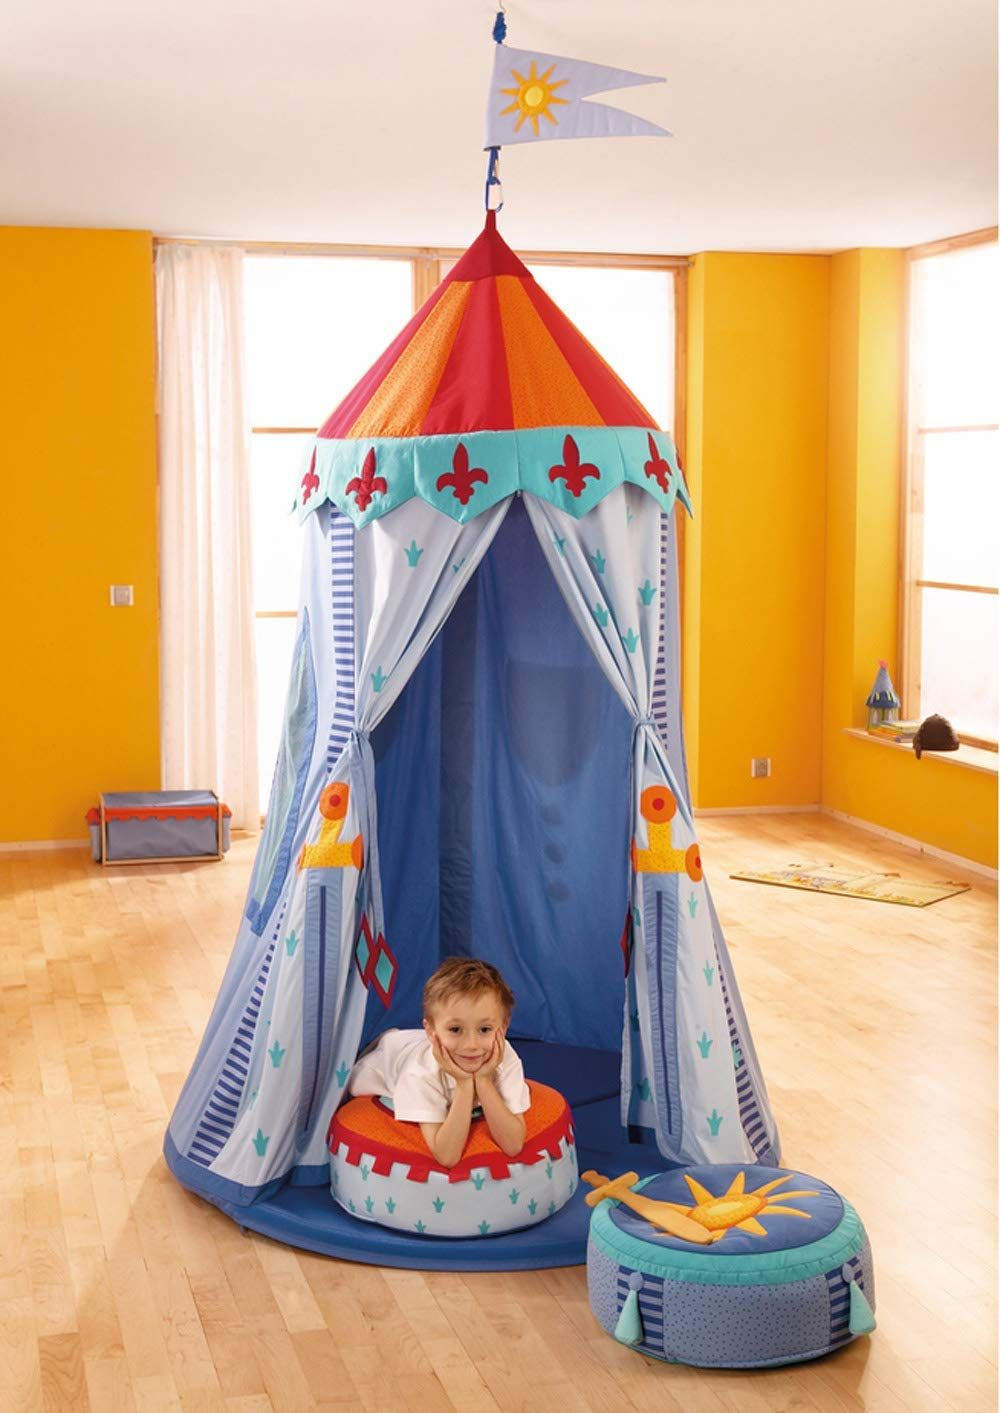 Photo of Knight's Hanging Tent Playhouse